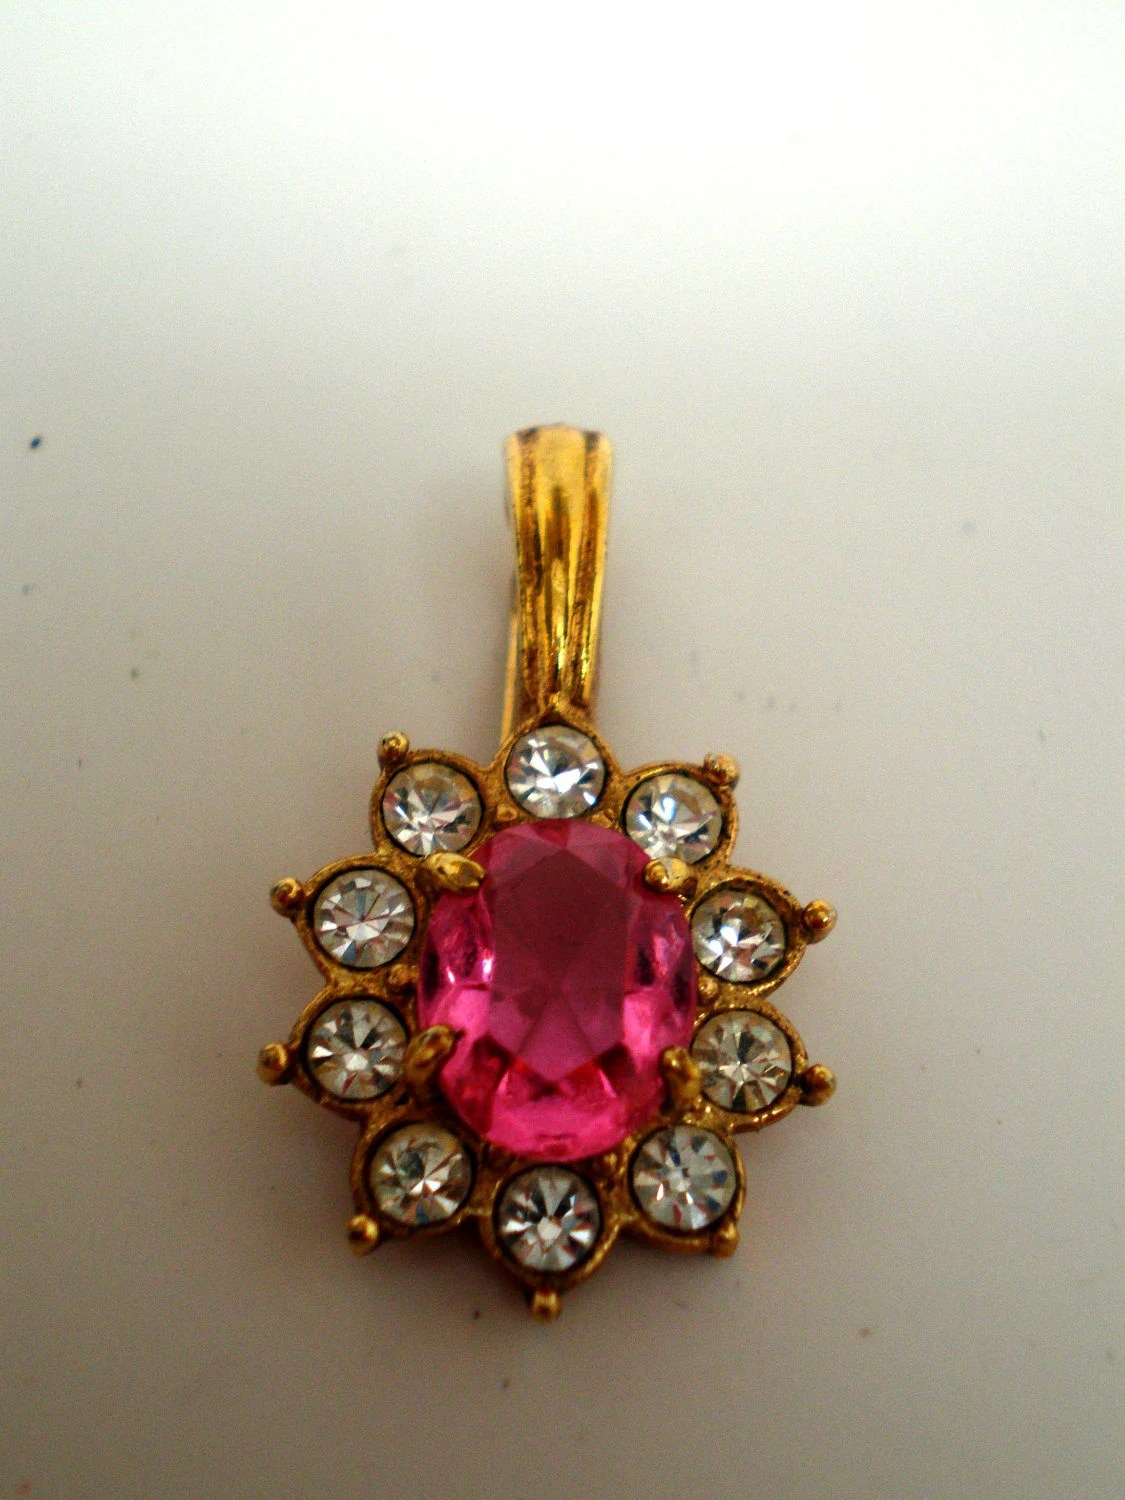 Vintage Pendant Signed Rome 60s Large Pink Pronged Rhinestone Circled With 10 Crystals All Pronged